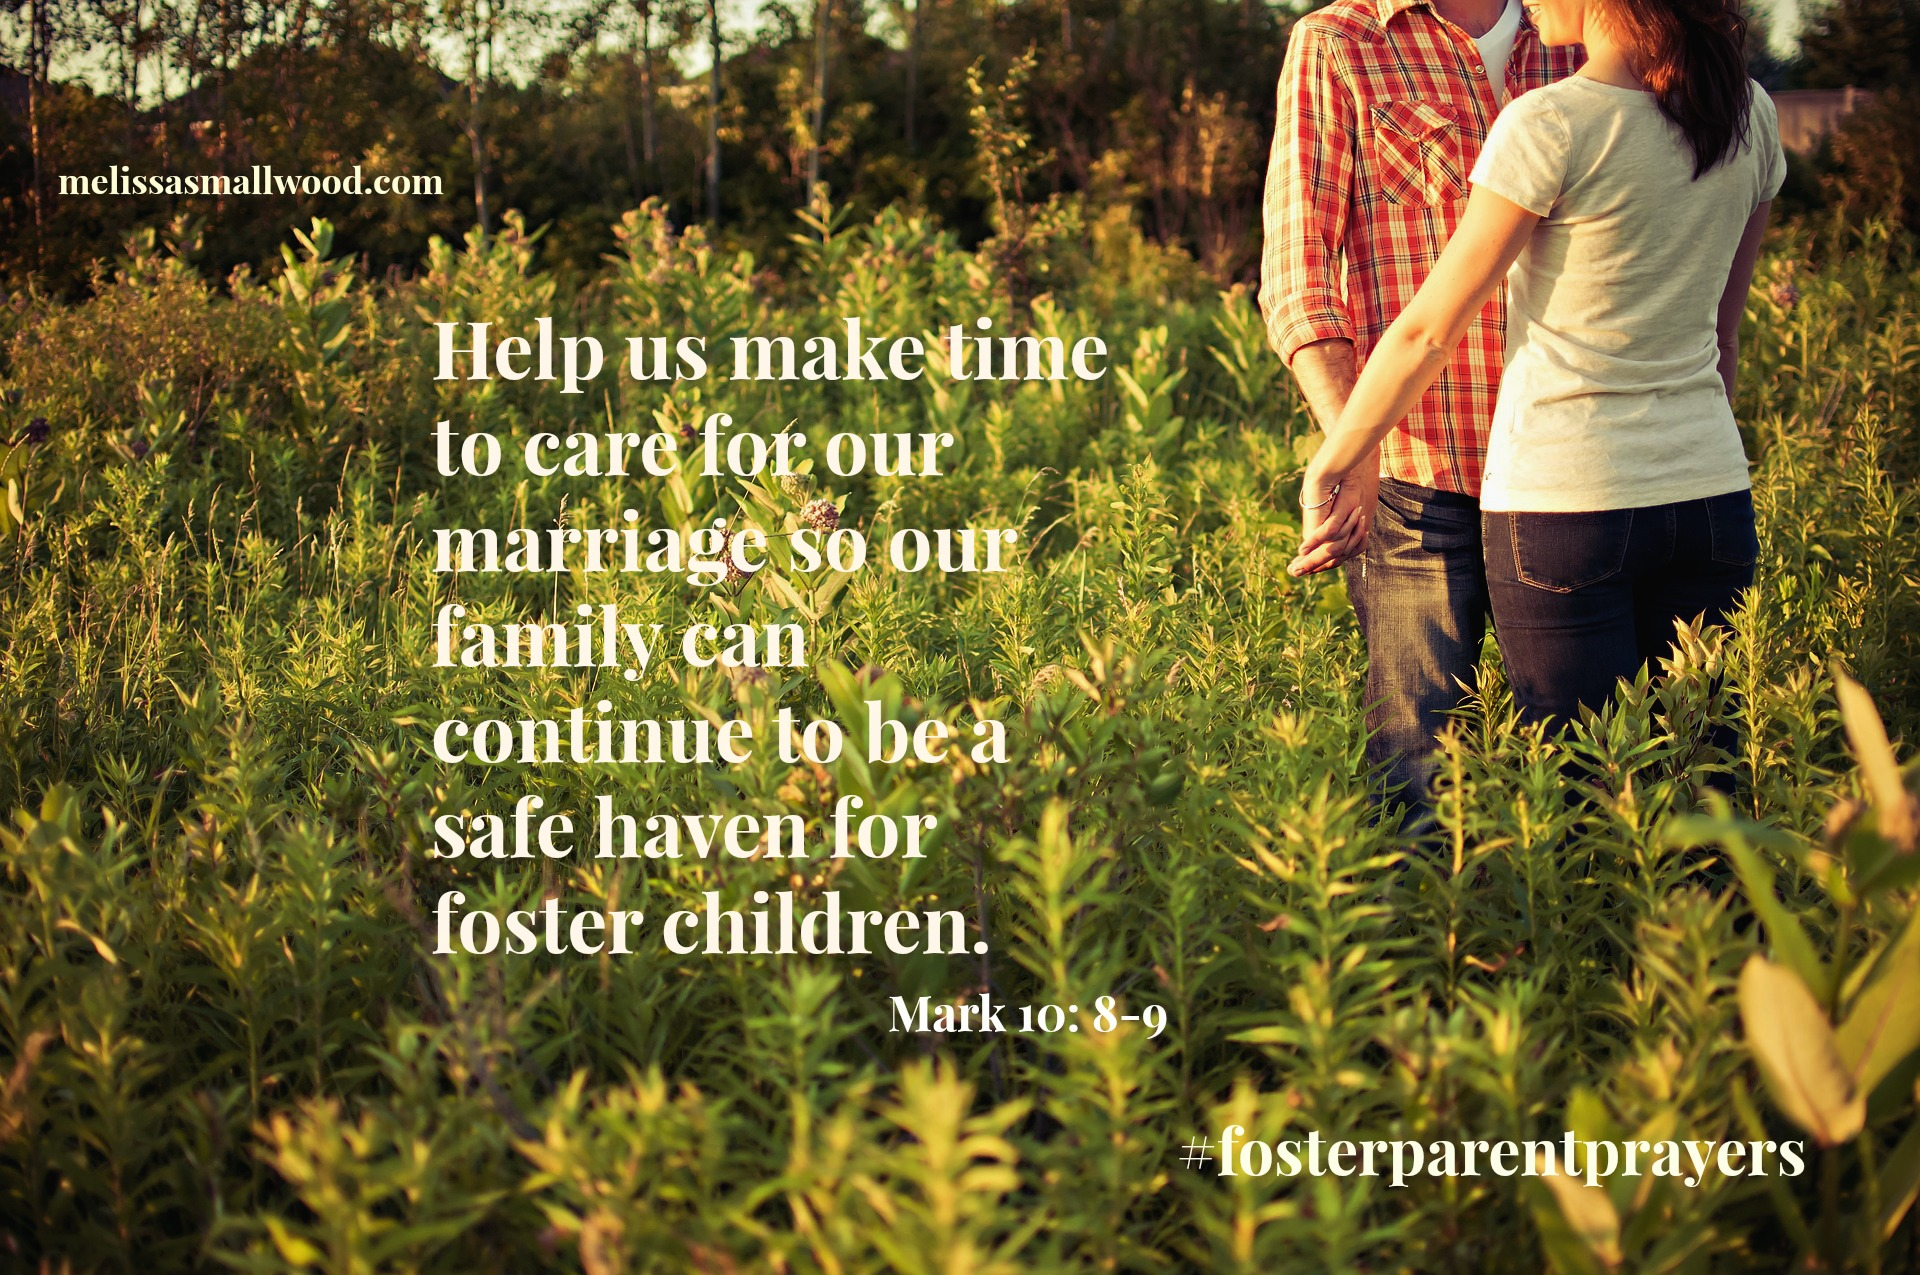 Foster Parent Prayers May 16